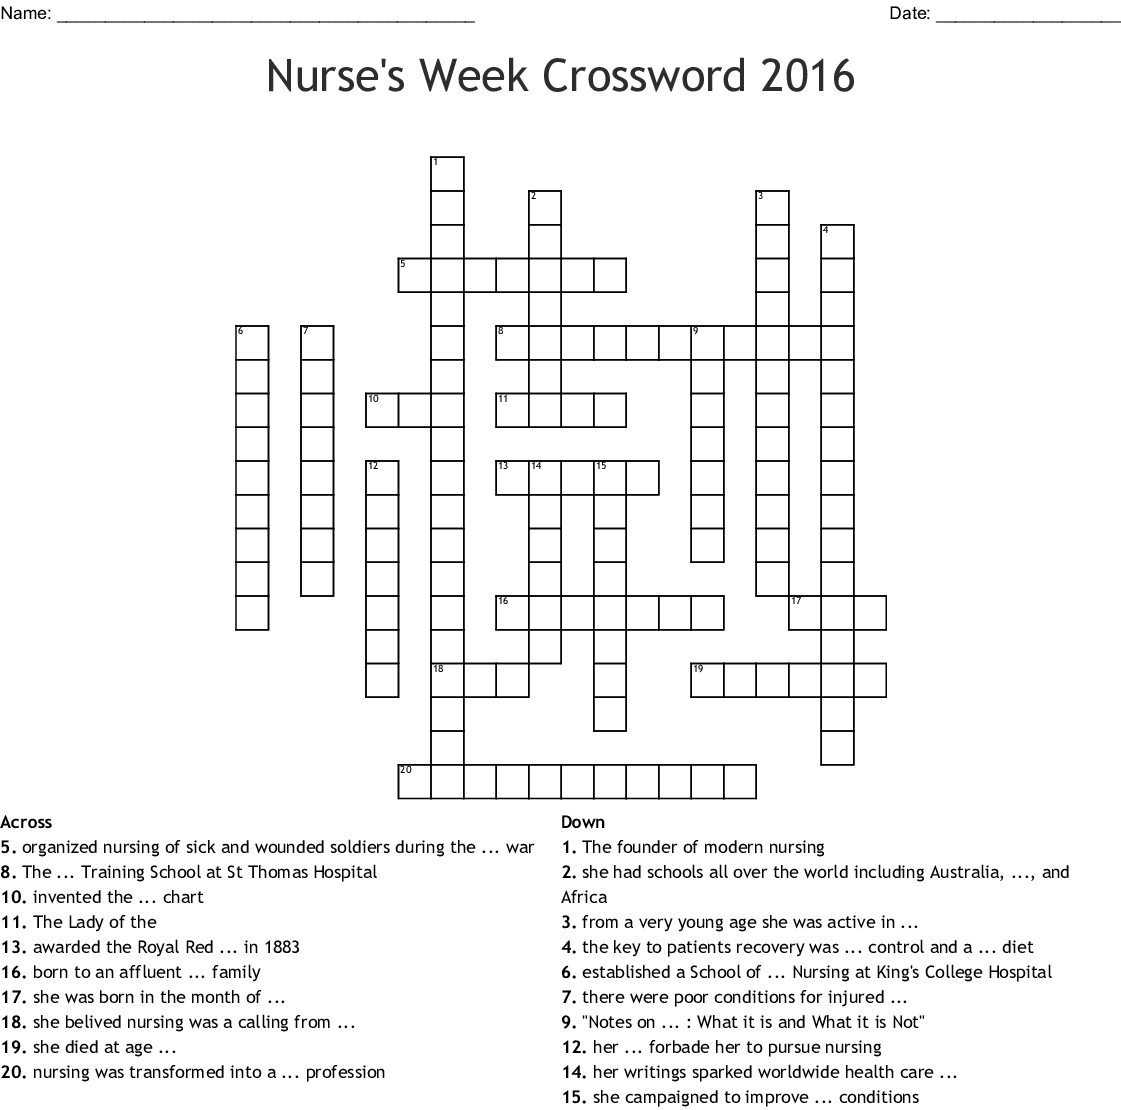 Halloween Crossword Puzzle Worksheet Answers Word Hobbyist